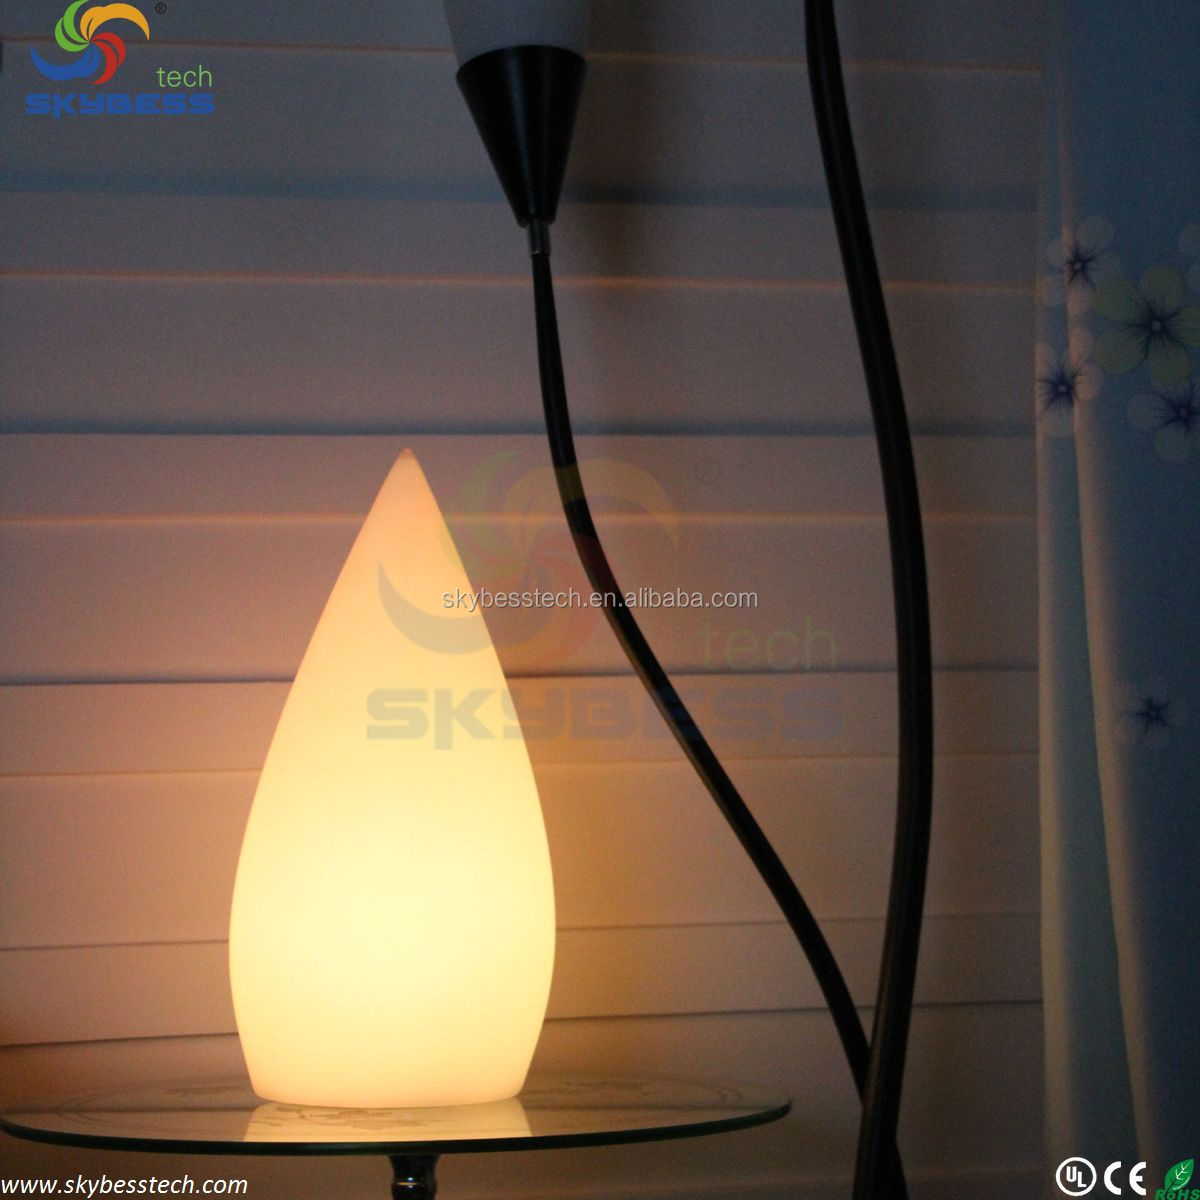 waterproof wireless cordless decorative table lamps led table lamp. Black Bedroom Furniture Sets. Home Design Ideas